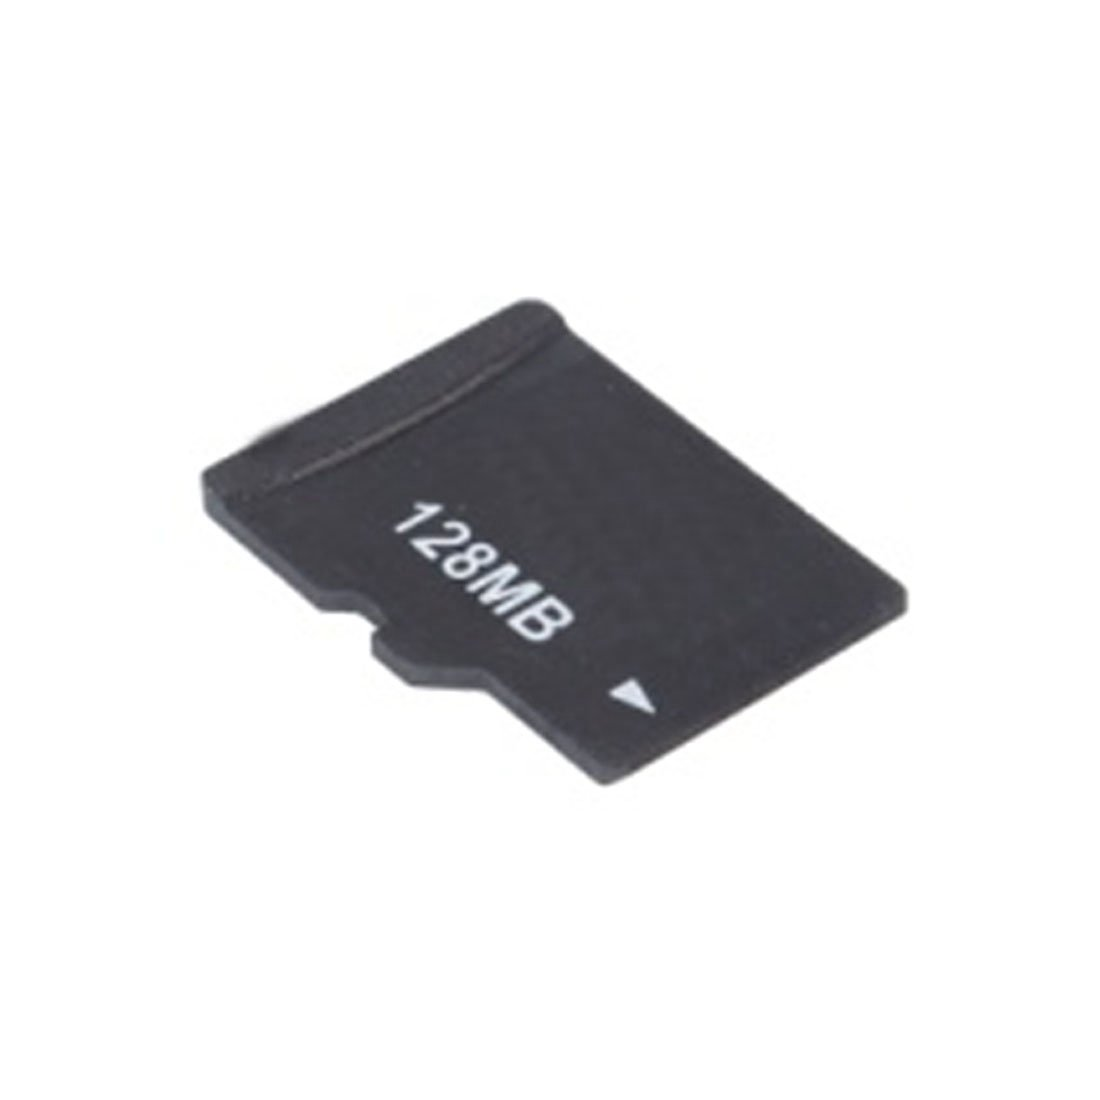 Memory Card - TOOGOO(R)128MB Micro SD TF Memory Card For Samsung Galaxy S5 S4 S3 Note 4 3 2 Android Tablet